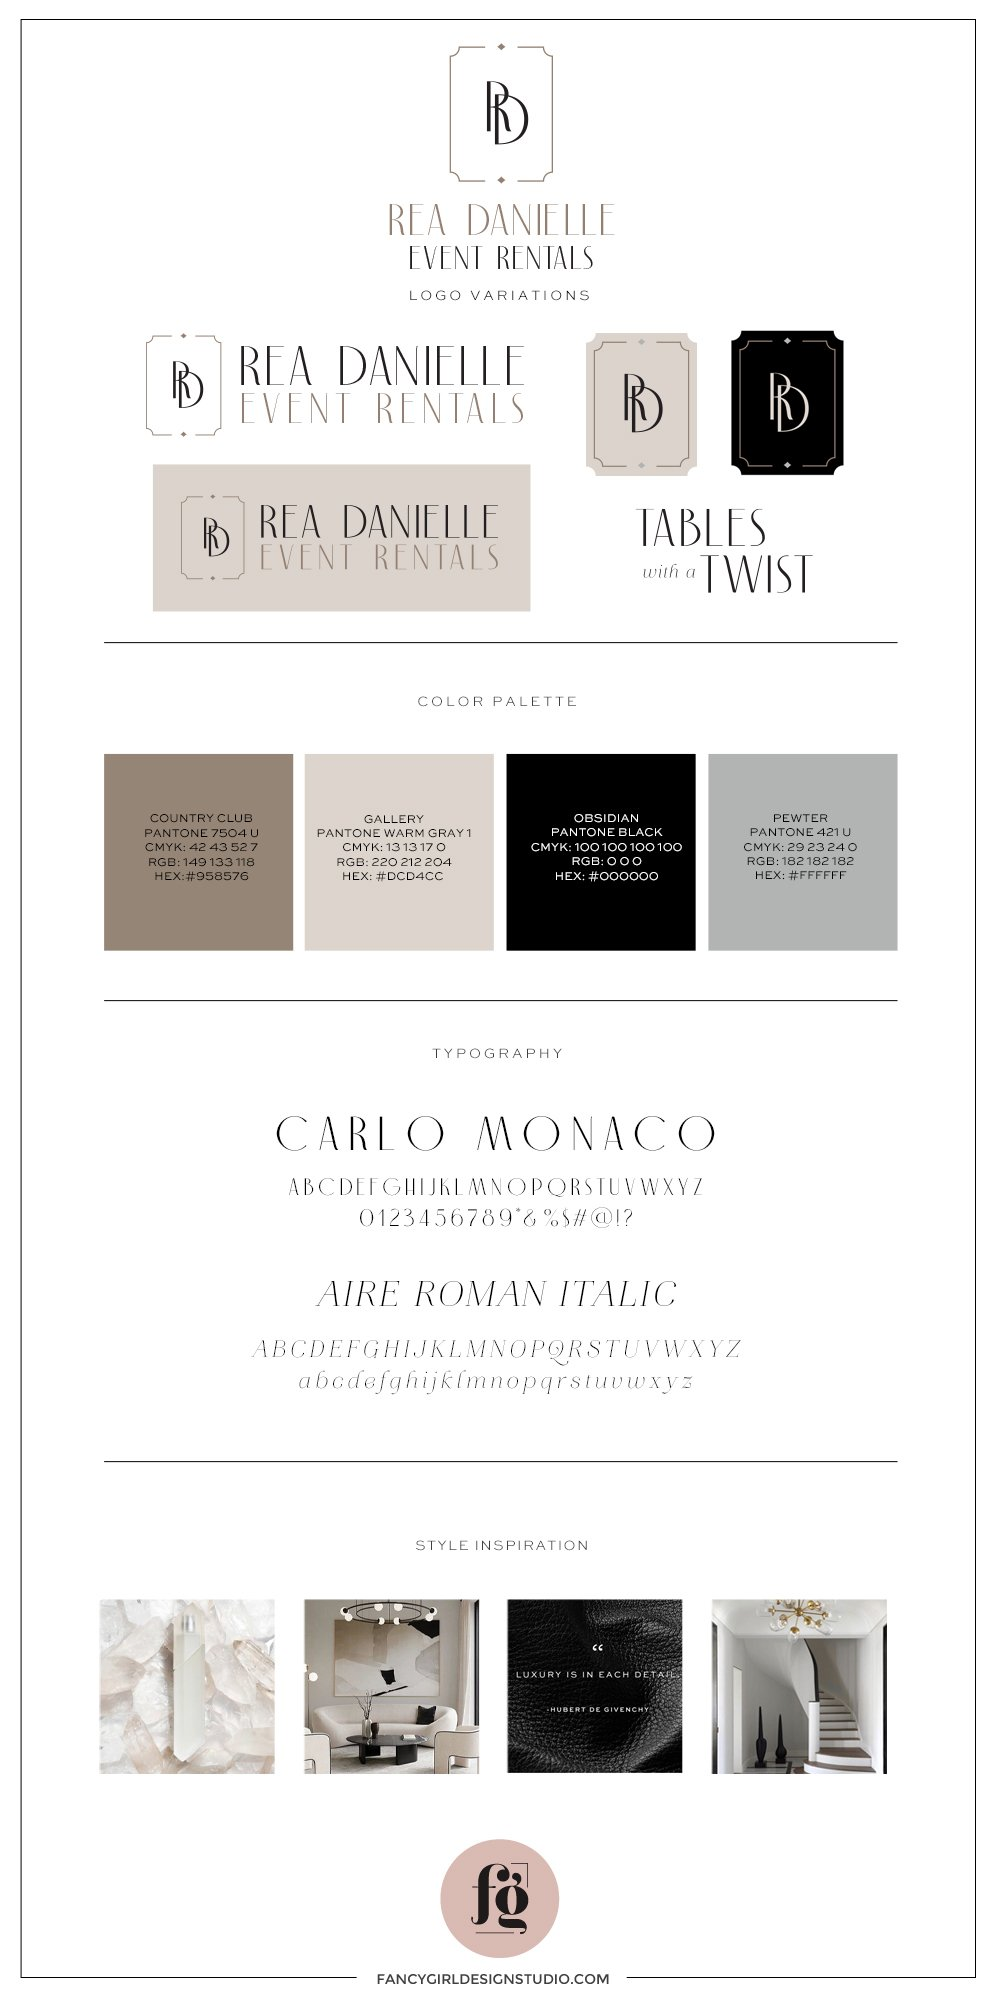 Brand guide for RD Luxury Rentals. elegant & luxurious brand identity design for RD Luxury Rentals by Fancy Girl Design Studio | stylish and sophisticated logo design for an event rental company